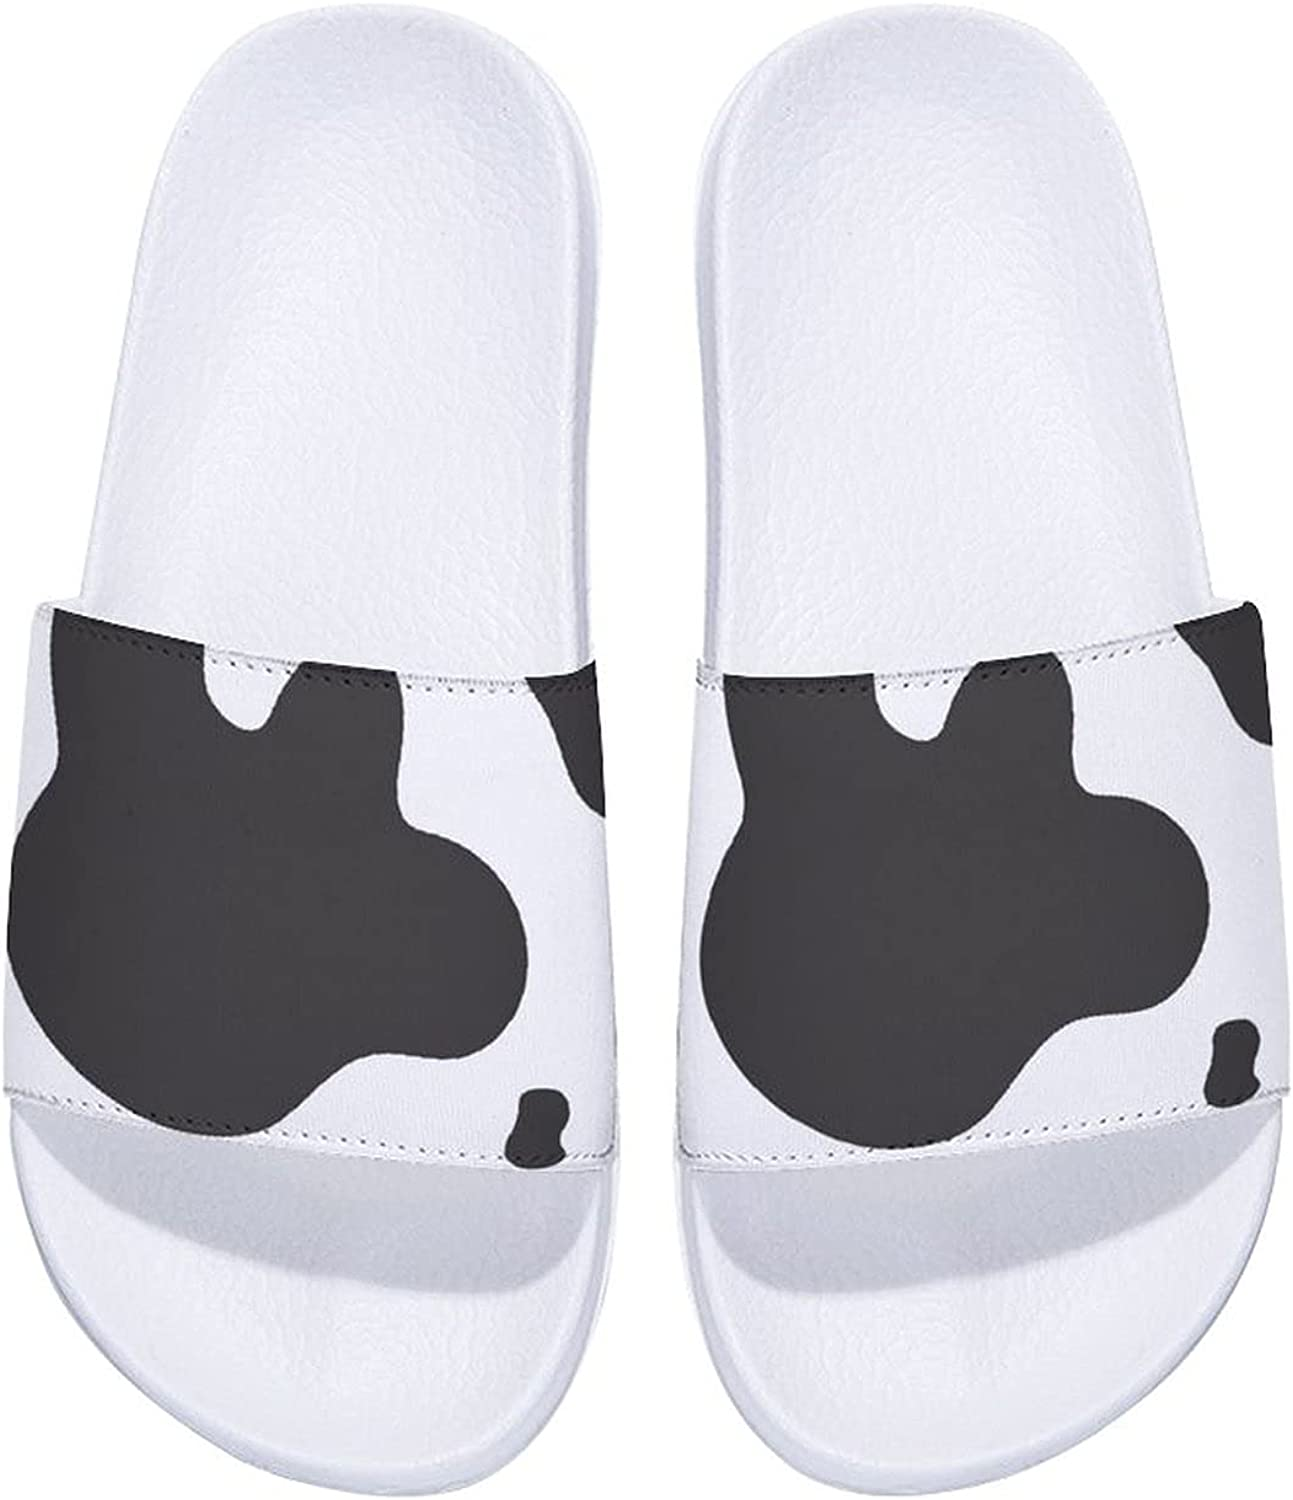 Cow White And Max 44% OFF Black Kansas City Mall Skin Men's Women's and Comfort Slide Sandals